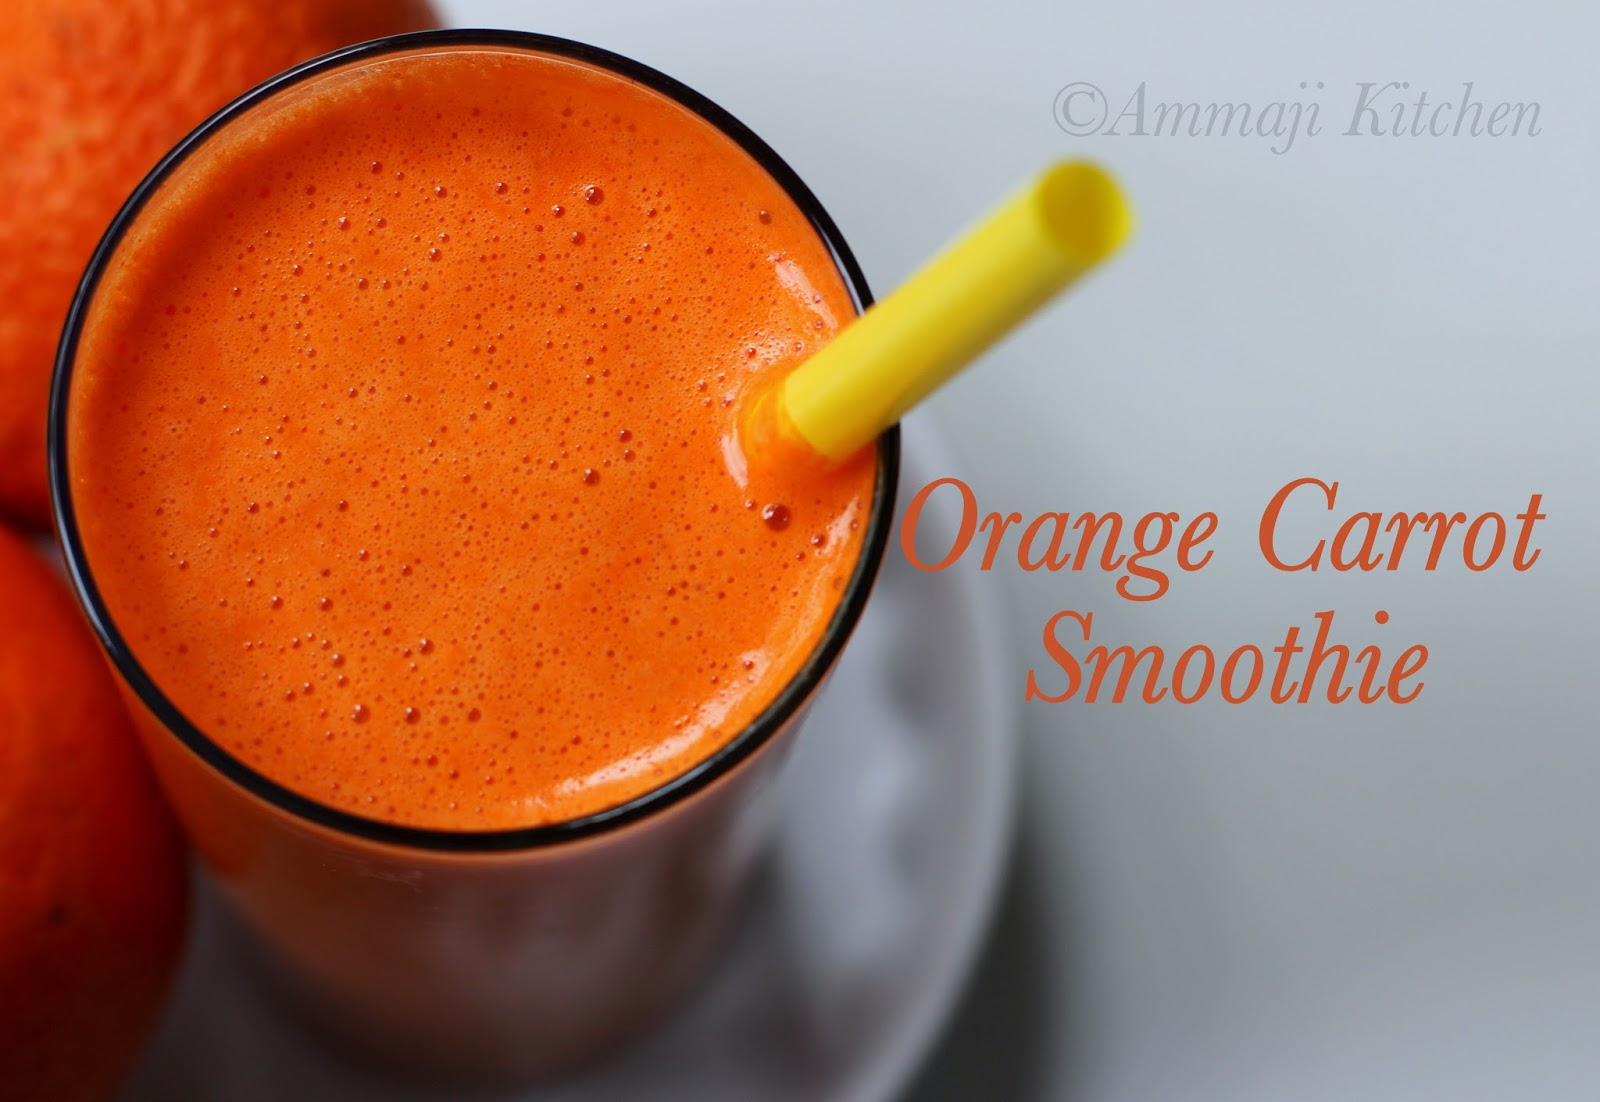 Orange Carrot Smoothie